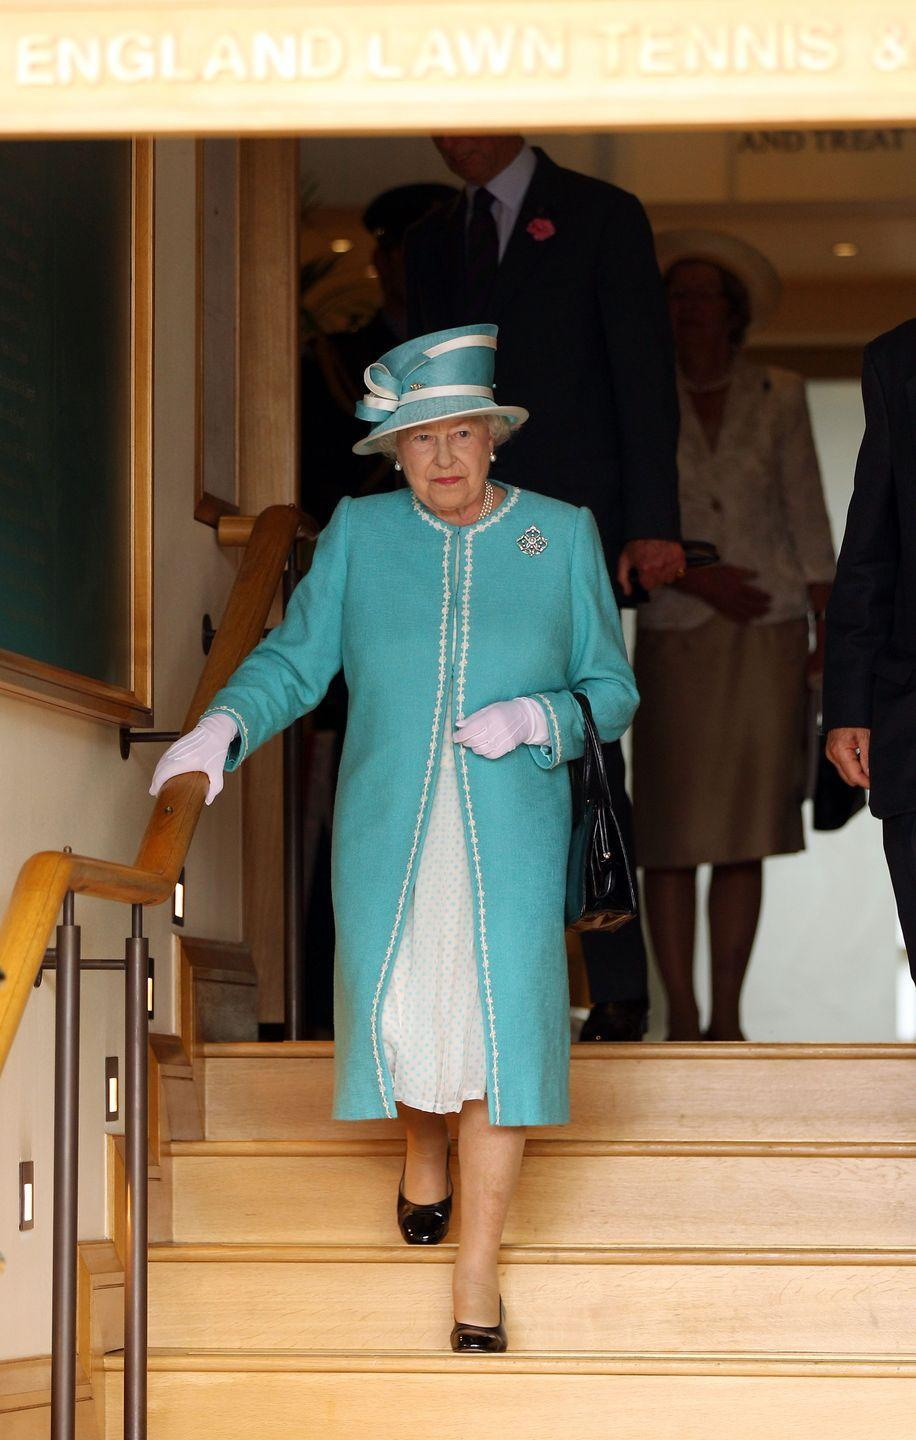 <p><strong>2010</strong> The Queen attended Wimbledon for the first time in over three decades, wearing a bright blue ensemble for the occasion.</p>